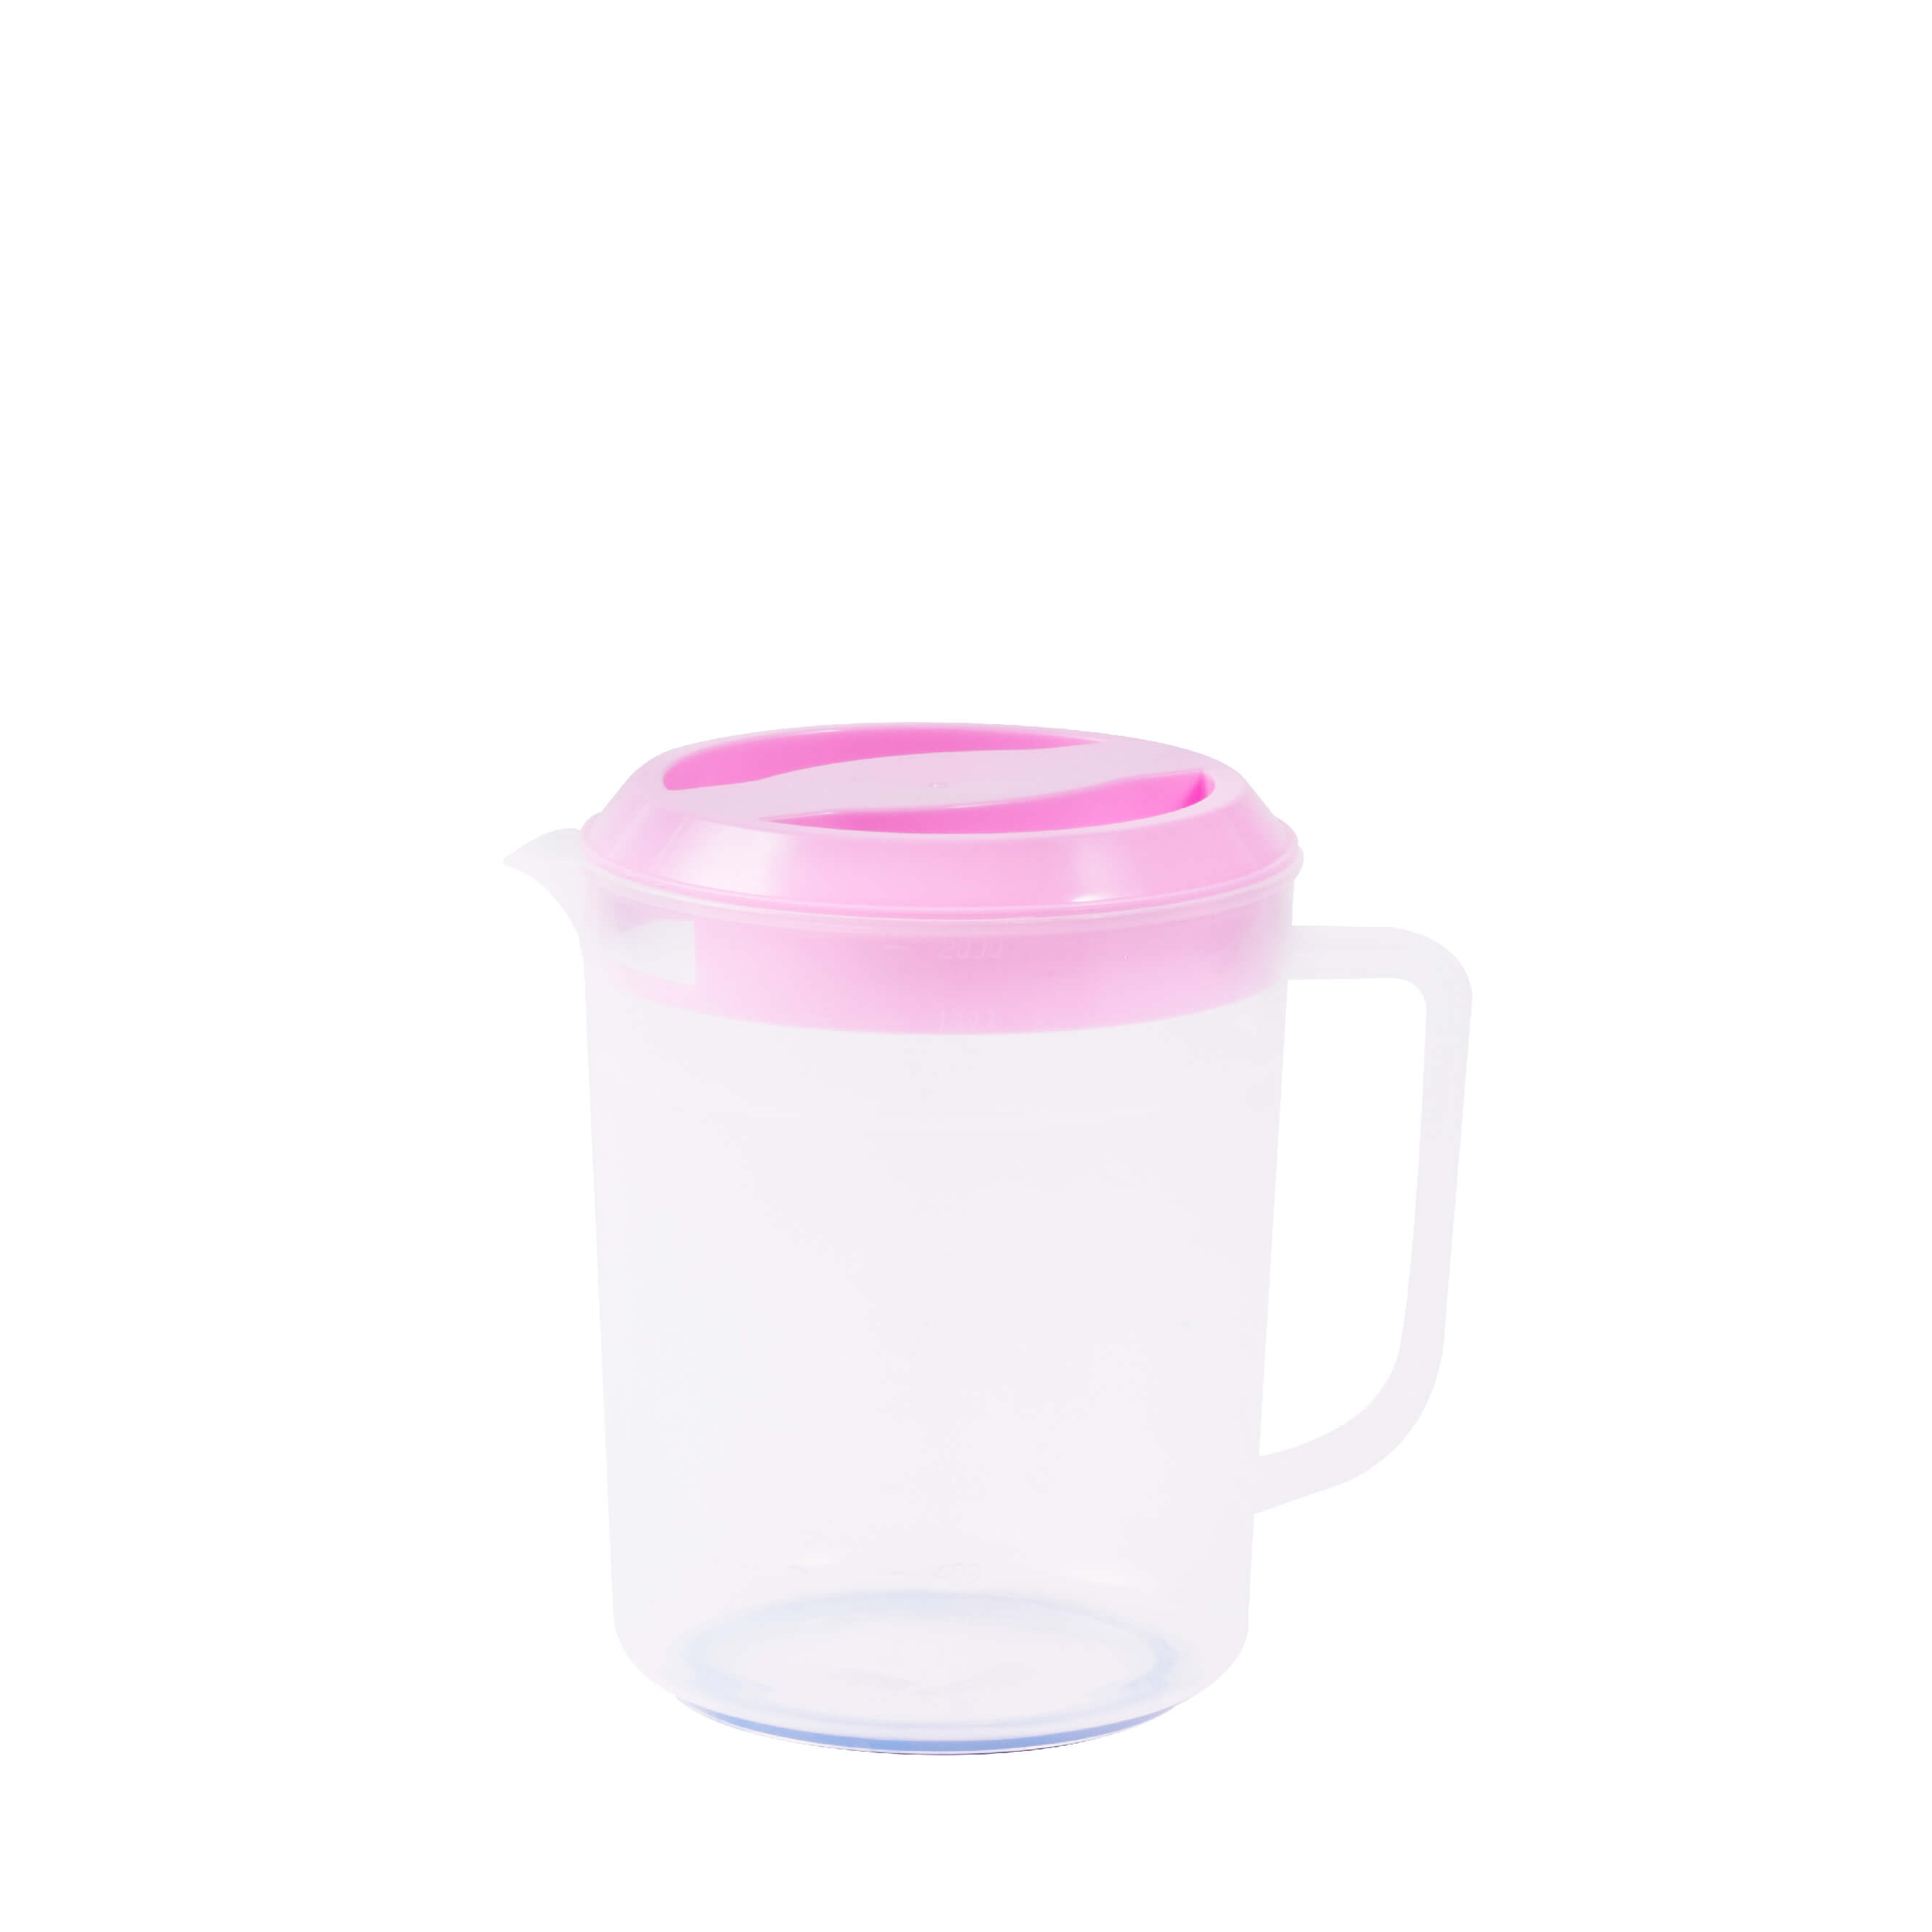 Plastic Water Pitcher With Lid Juice Jug With Measuring Scale 1l Buy Plastic Pitcher Clear Plastic Pitchers Plastic Water Pitcher Product On Alibaba Com